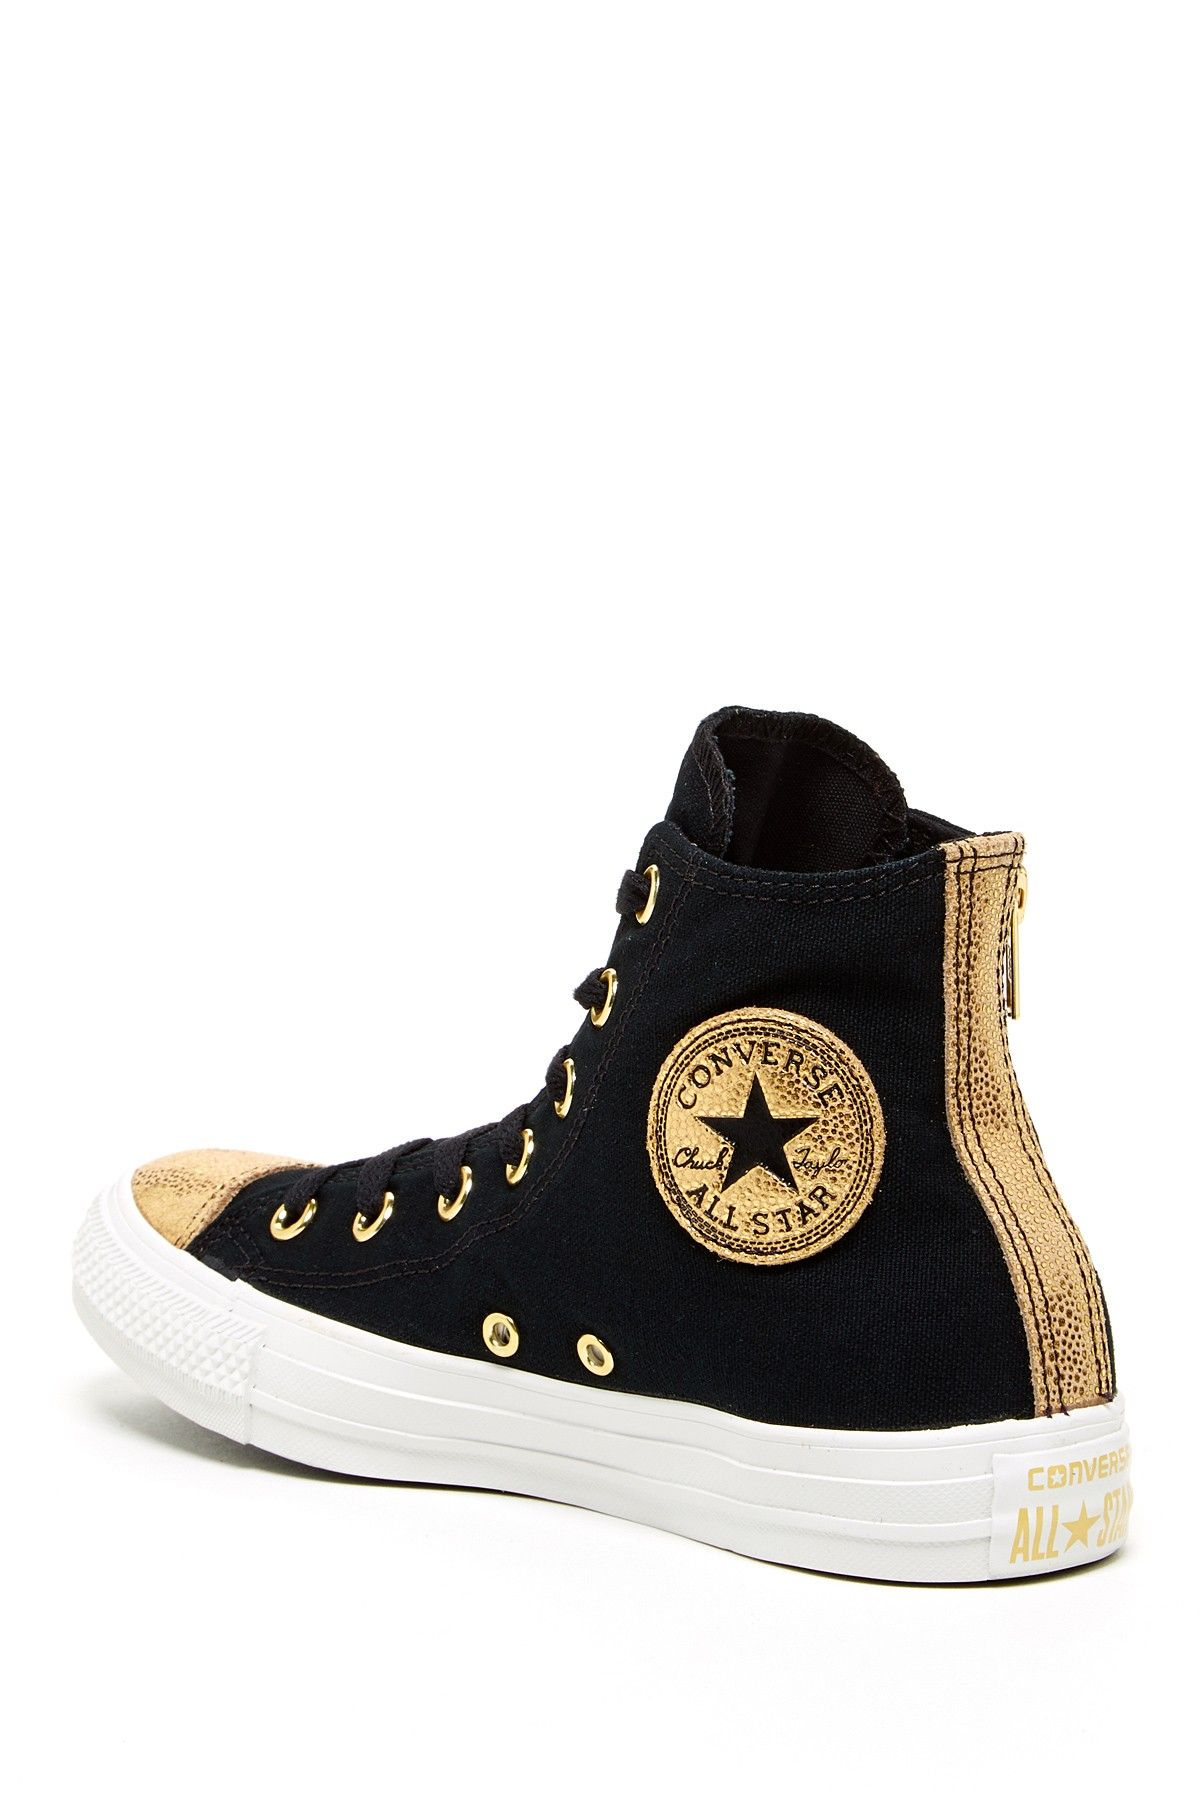 1817dd1fcc6dd5 Chuck Taylor Side Zip High Top Sneaker by Converse on  nordstrom rack